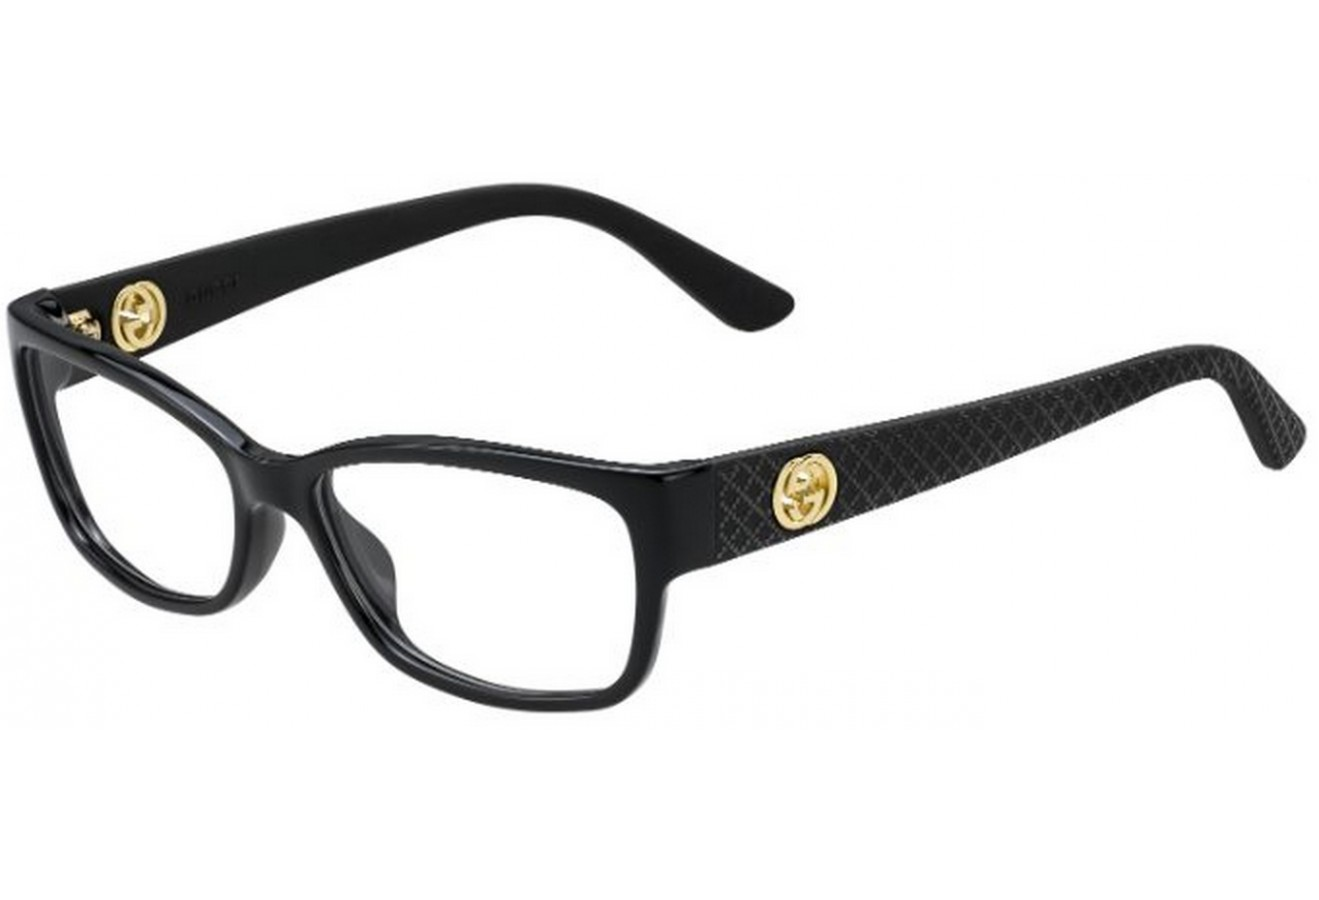 7ef0fdc80f Lunette Gucci Made In Italy - Bitterroot Public Library